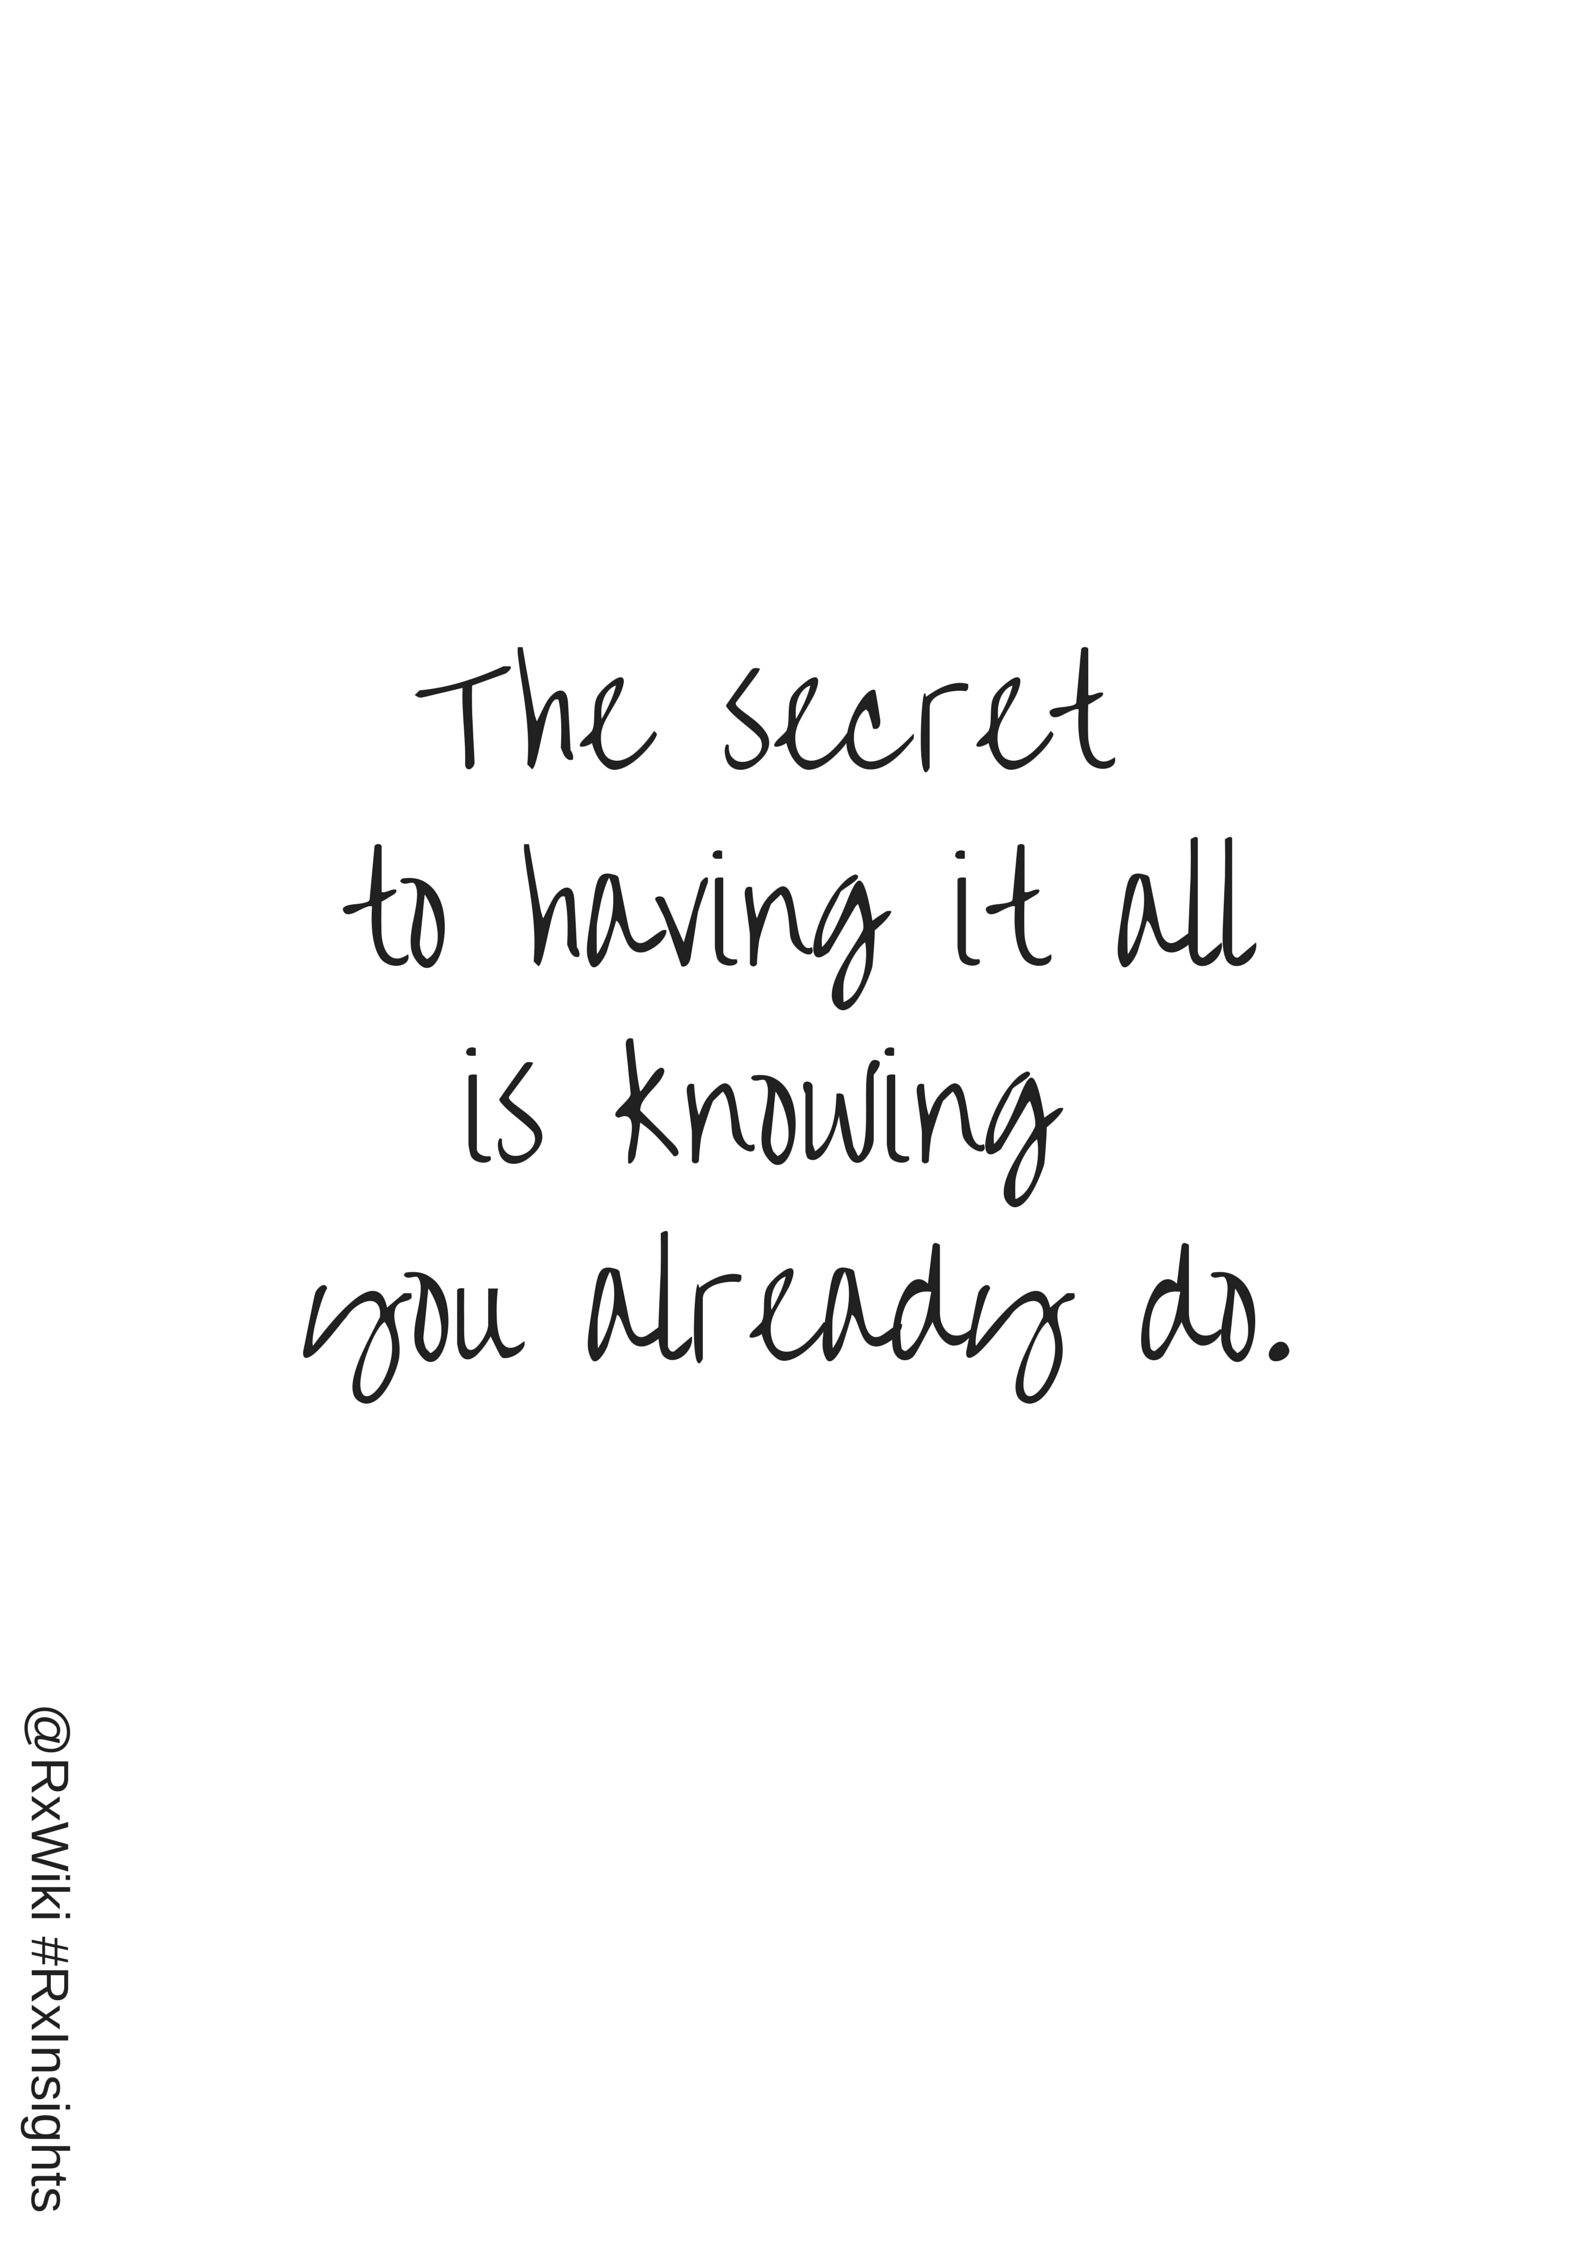 Love Family Quotes Interesting The Secret To Having It All Is Knowing You Already Do #quote #secret